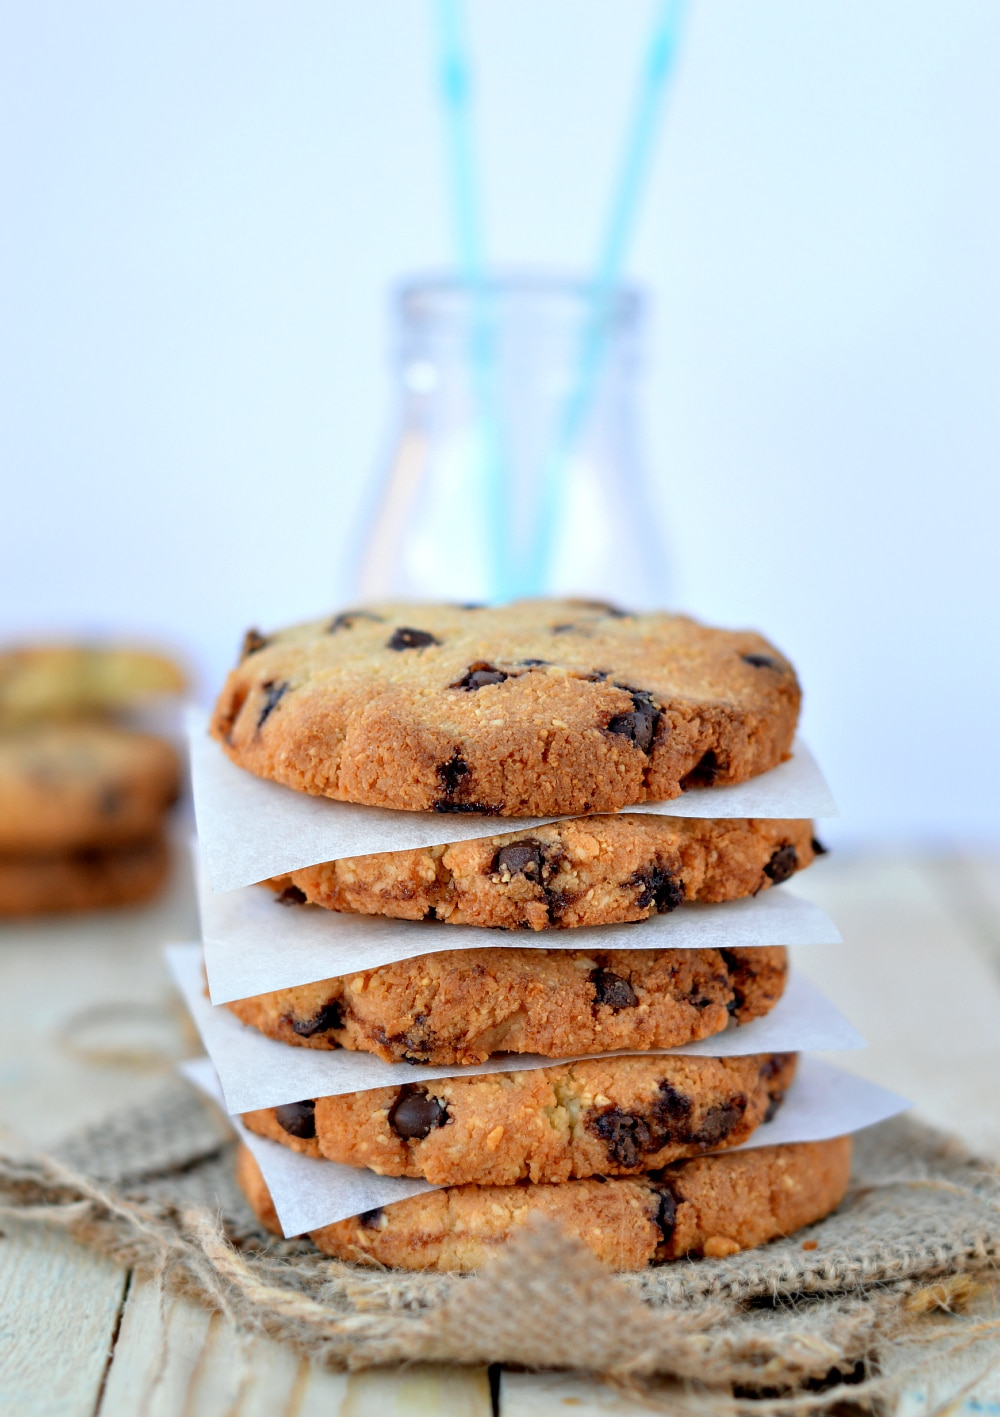 Delicious sugar free chocolate chip cookies recipe. One bowl easy low carb cookie recipe with coconut flour, cashews and stevia. Healthy gluten free chocolate chip cookies for diabetic.